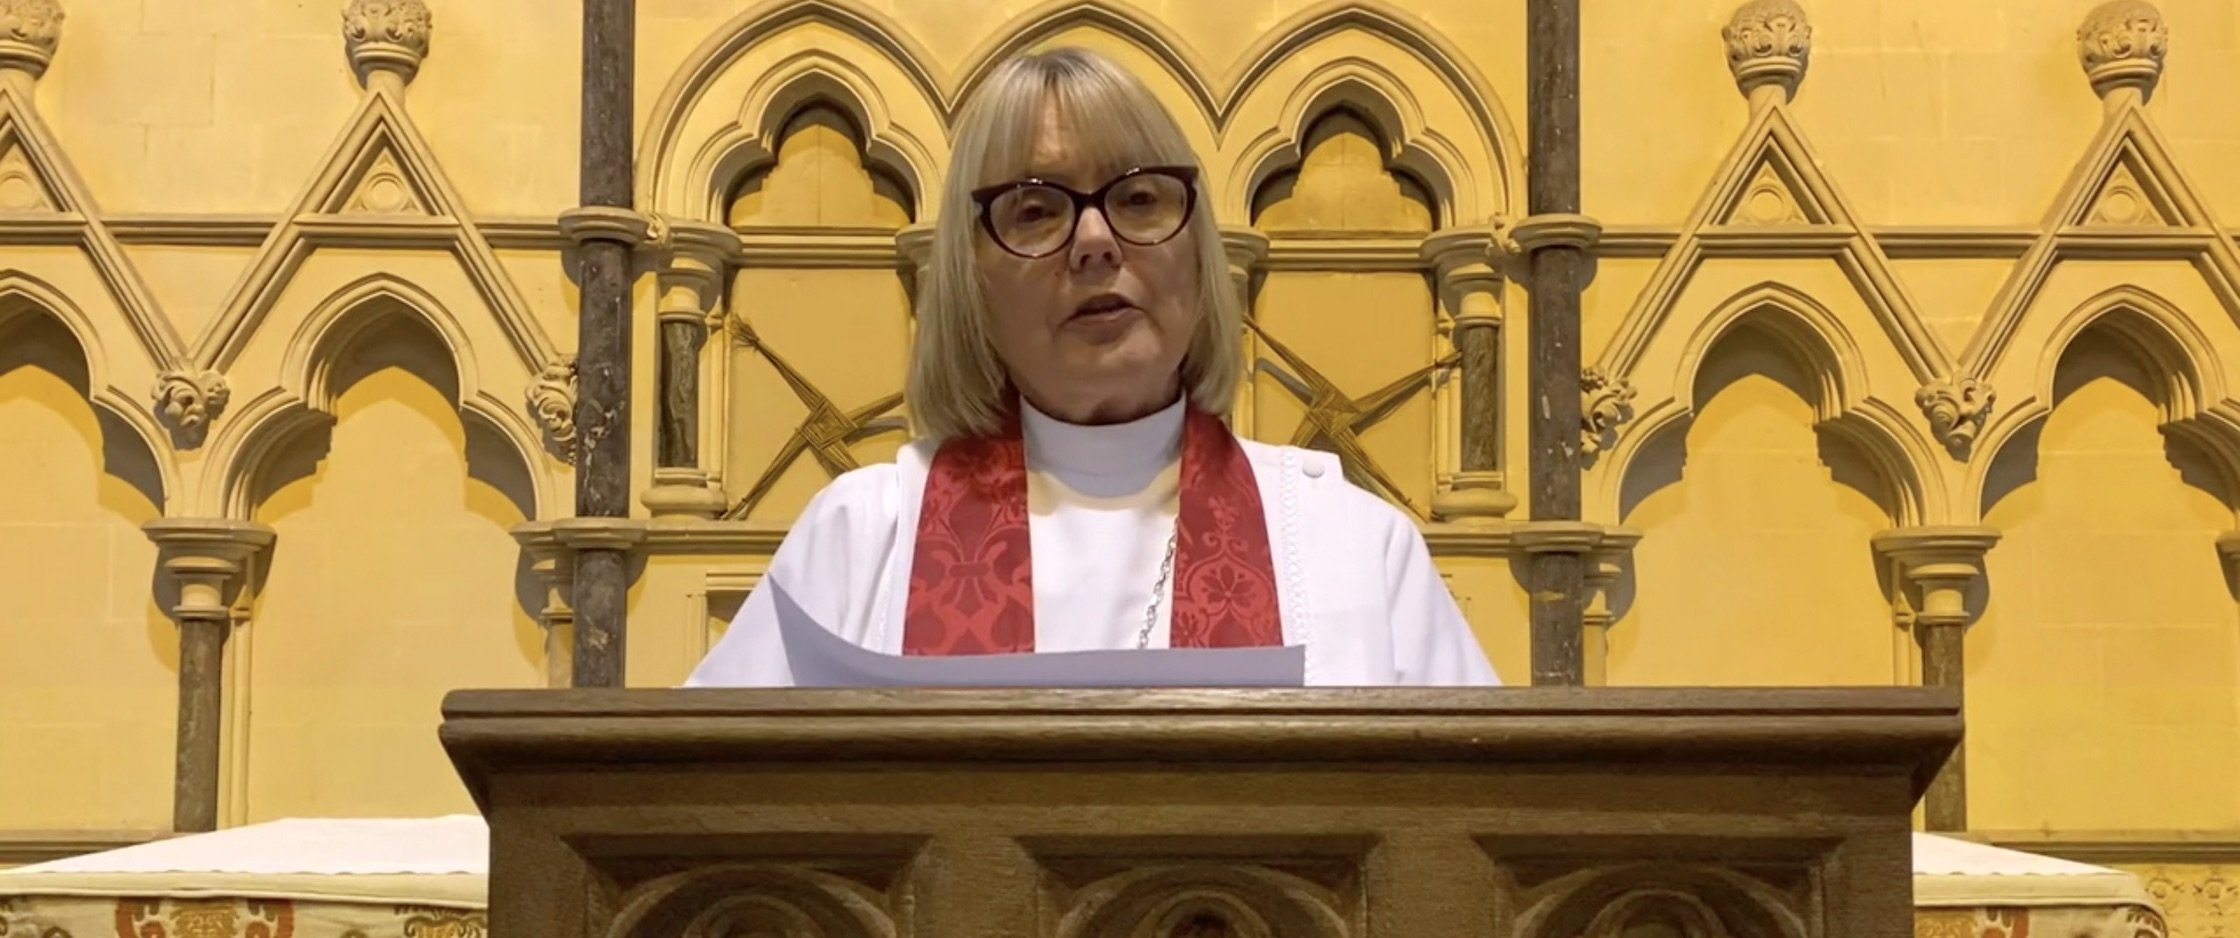 Finding hope – Synod Service Sermon by Bishop Pat Storey